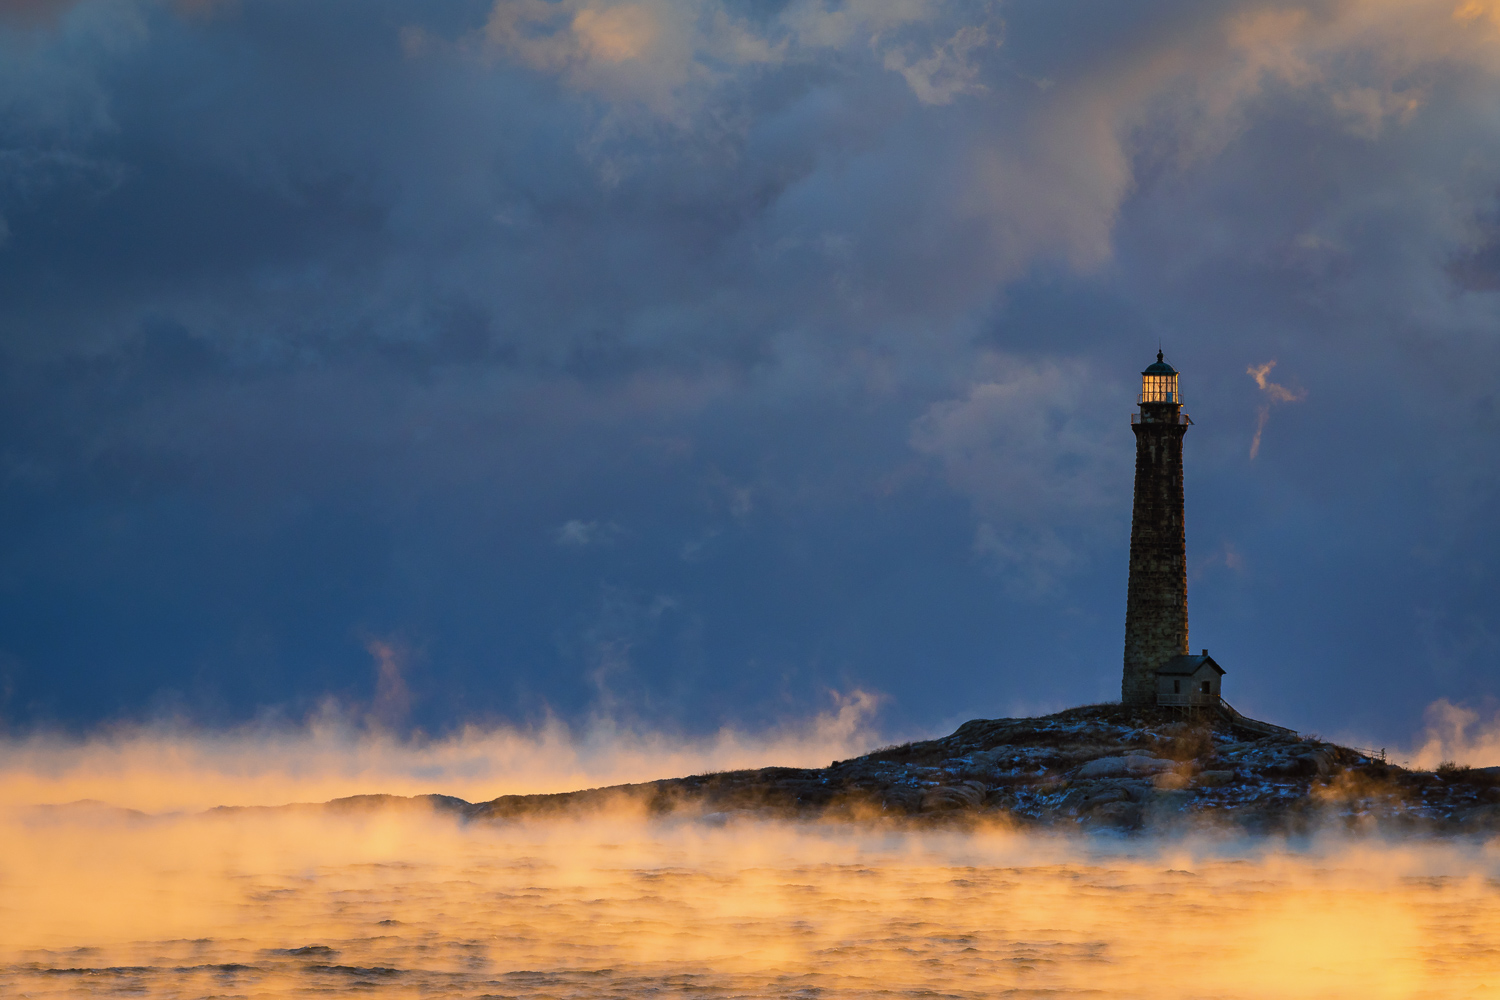 Nikon D500, 1/125 @ f/10, ISO 160, 70-200mm  Thacher Island Lighthouse